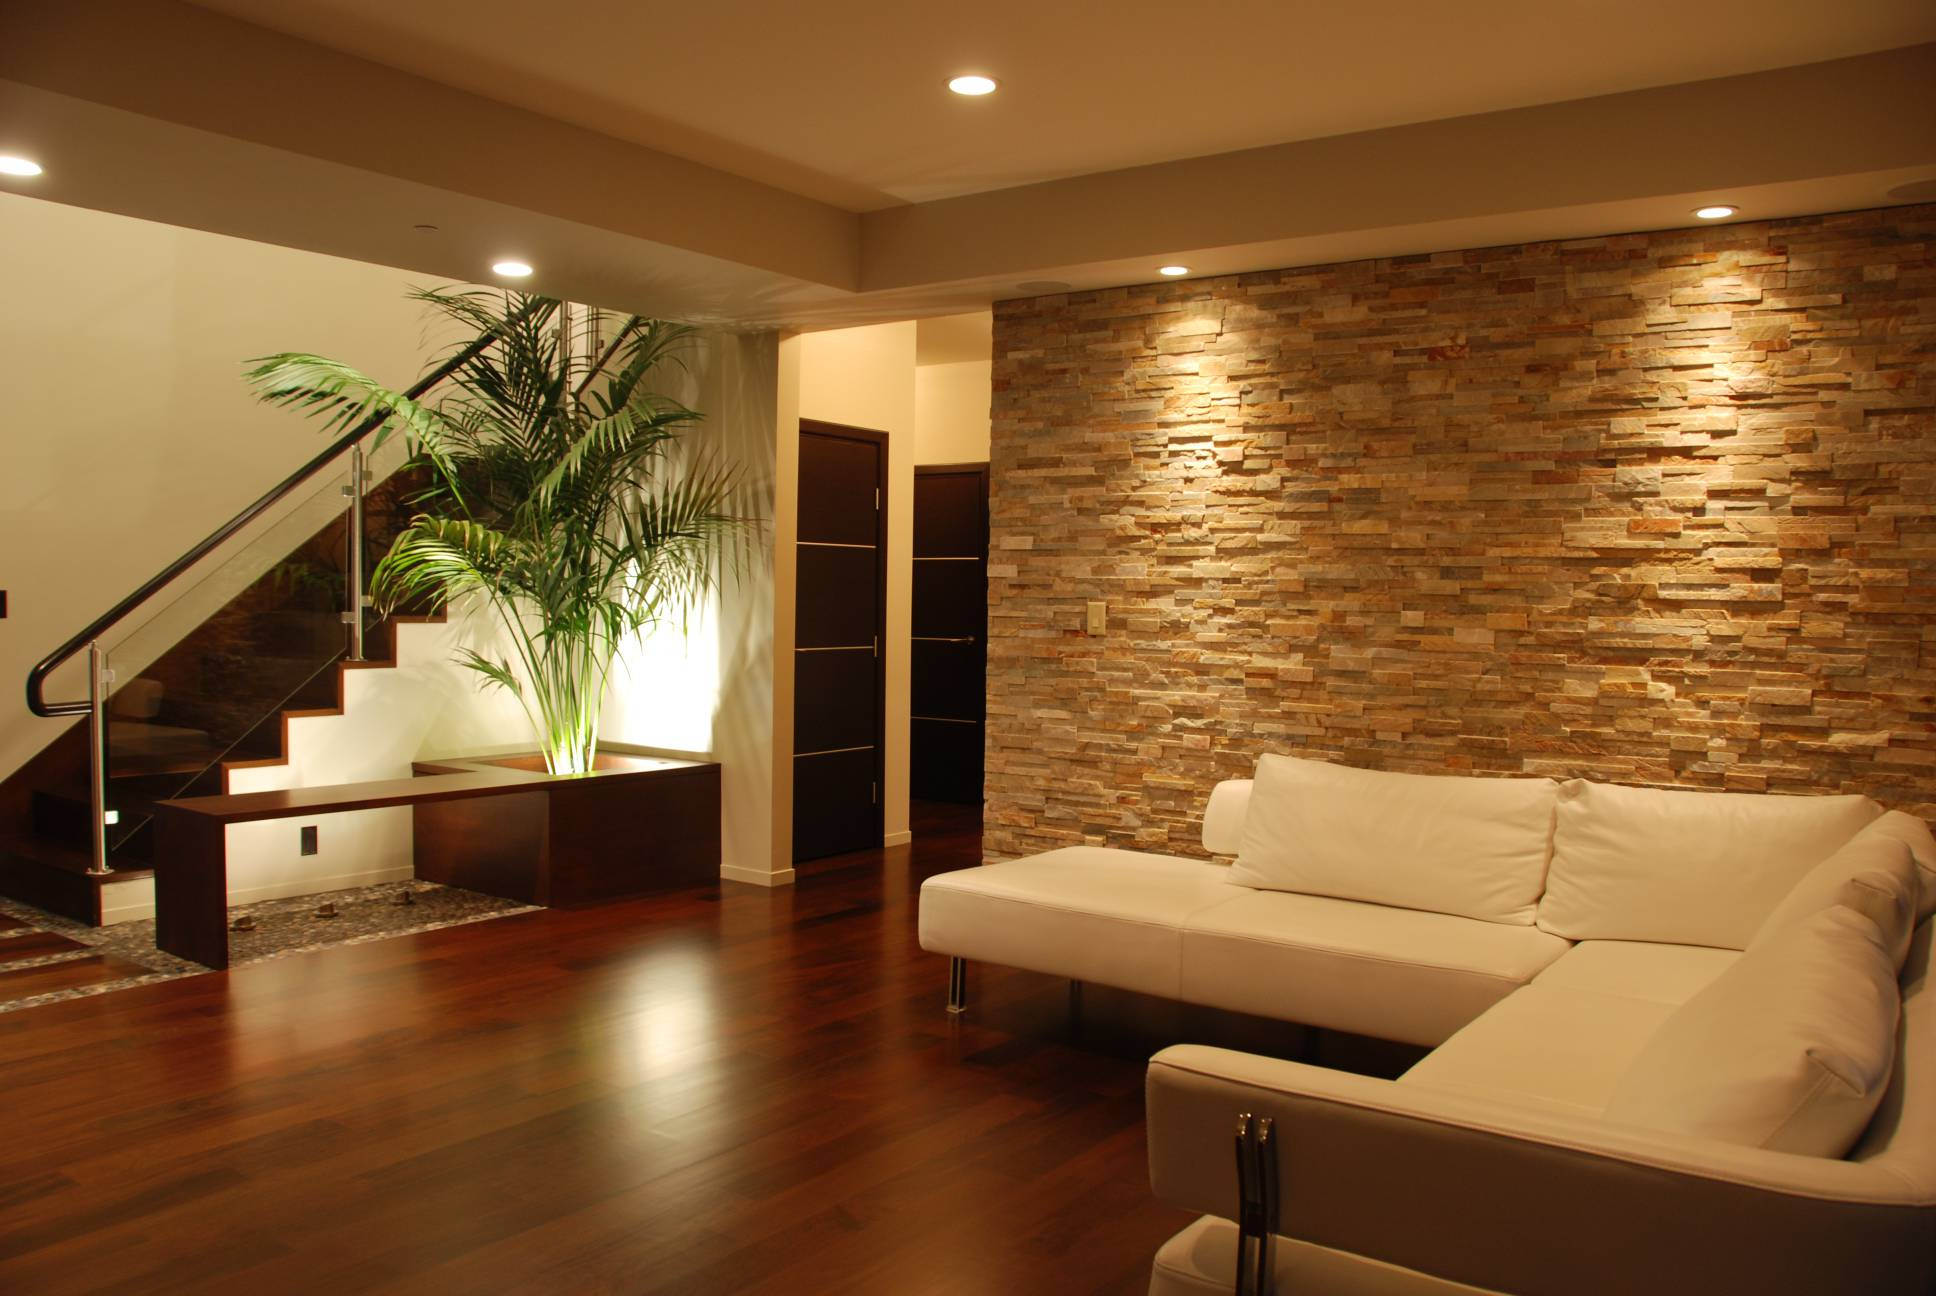 Living room stone wall, interior design, architect work, Los Altos